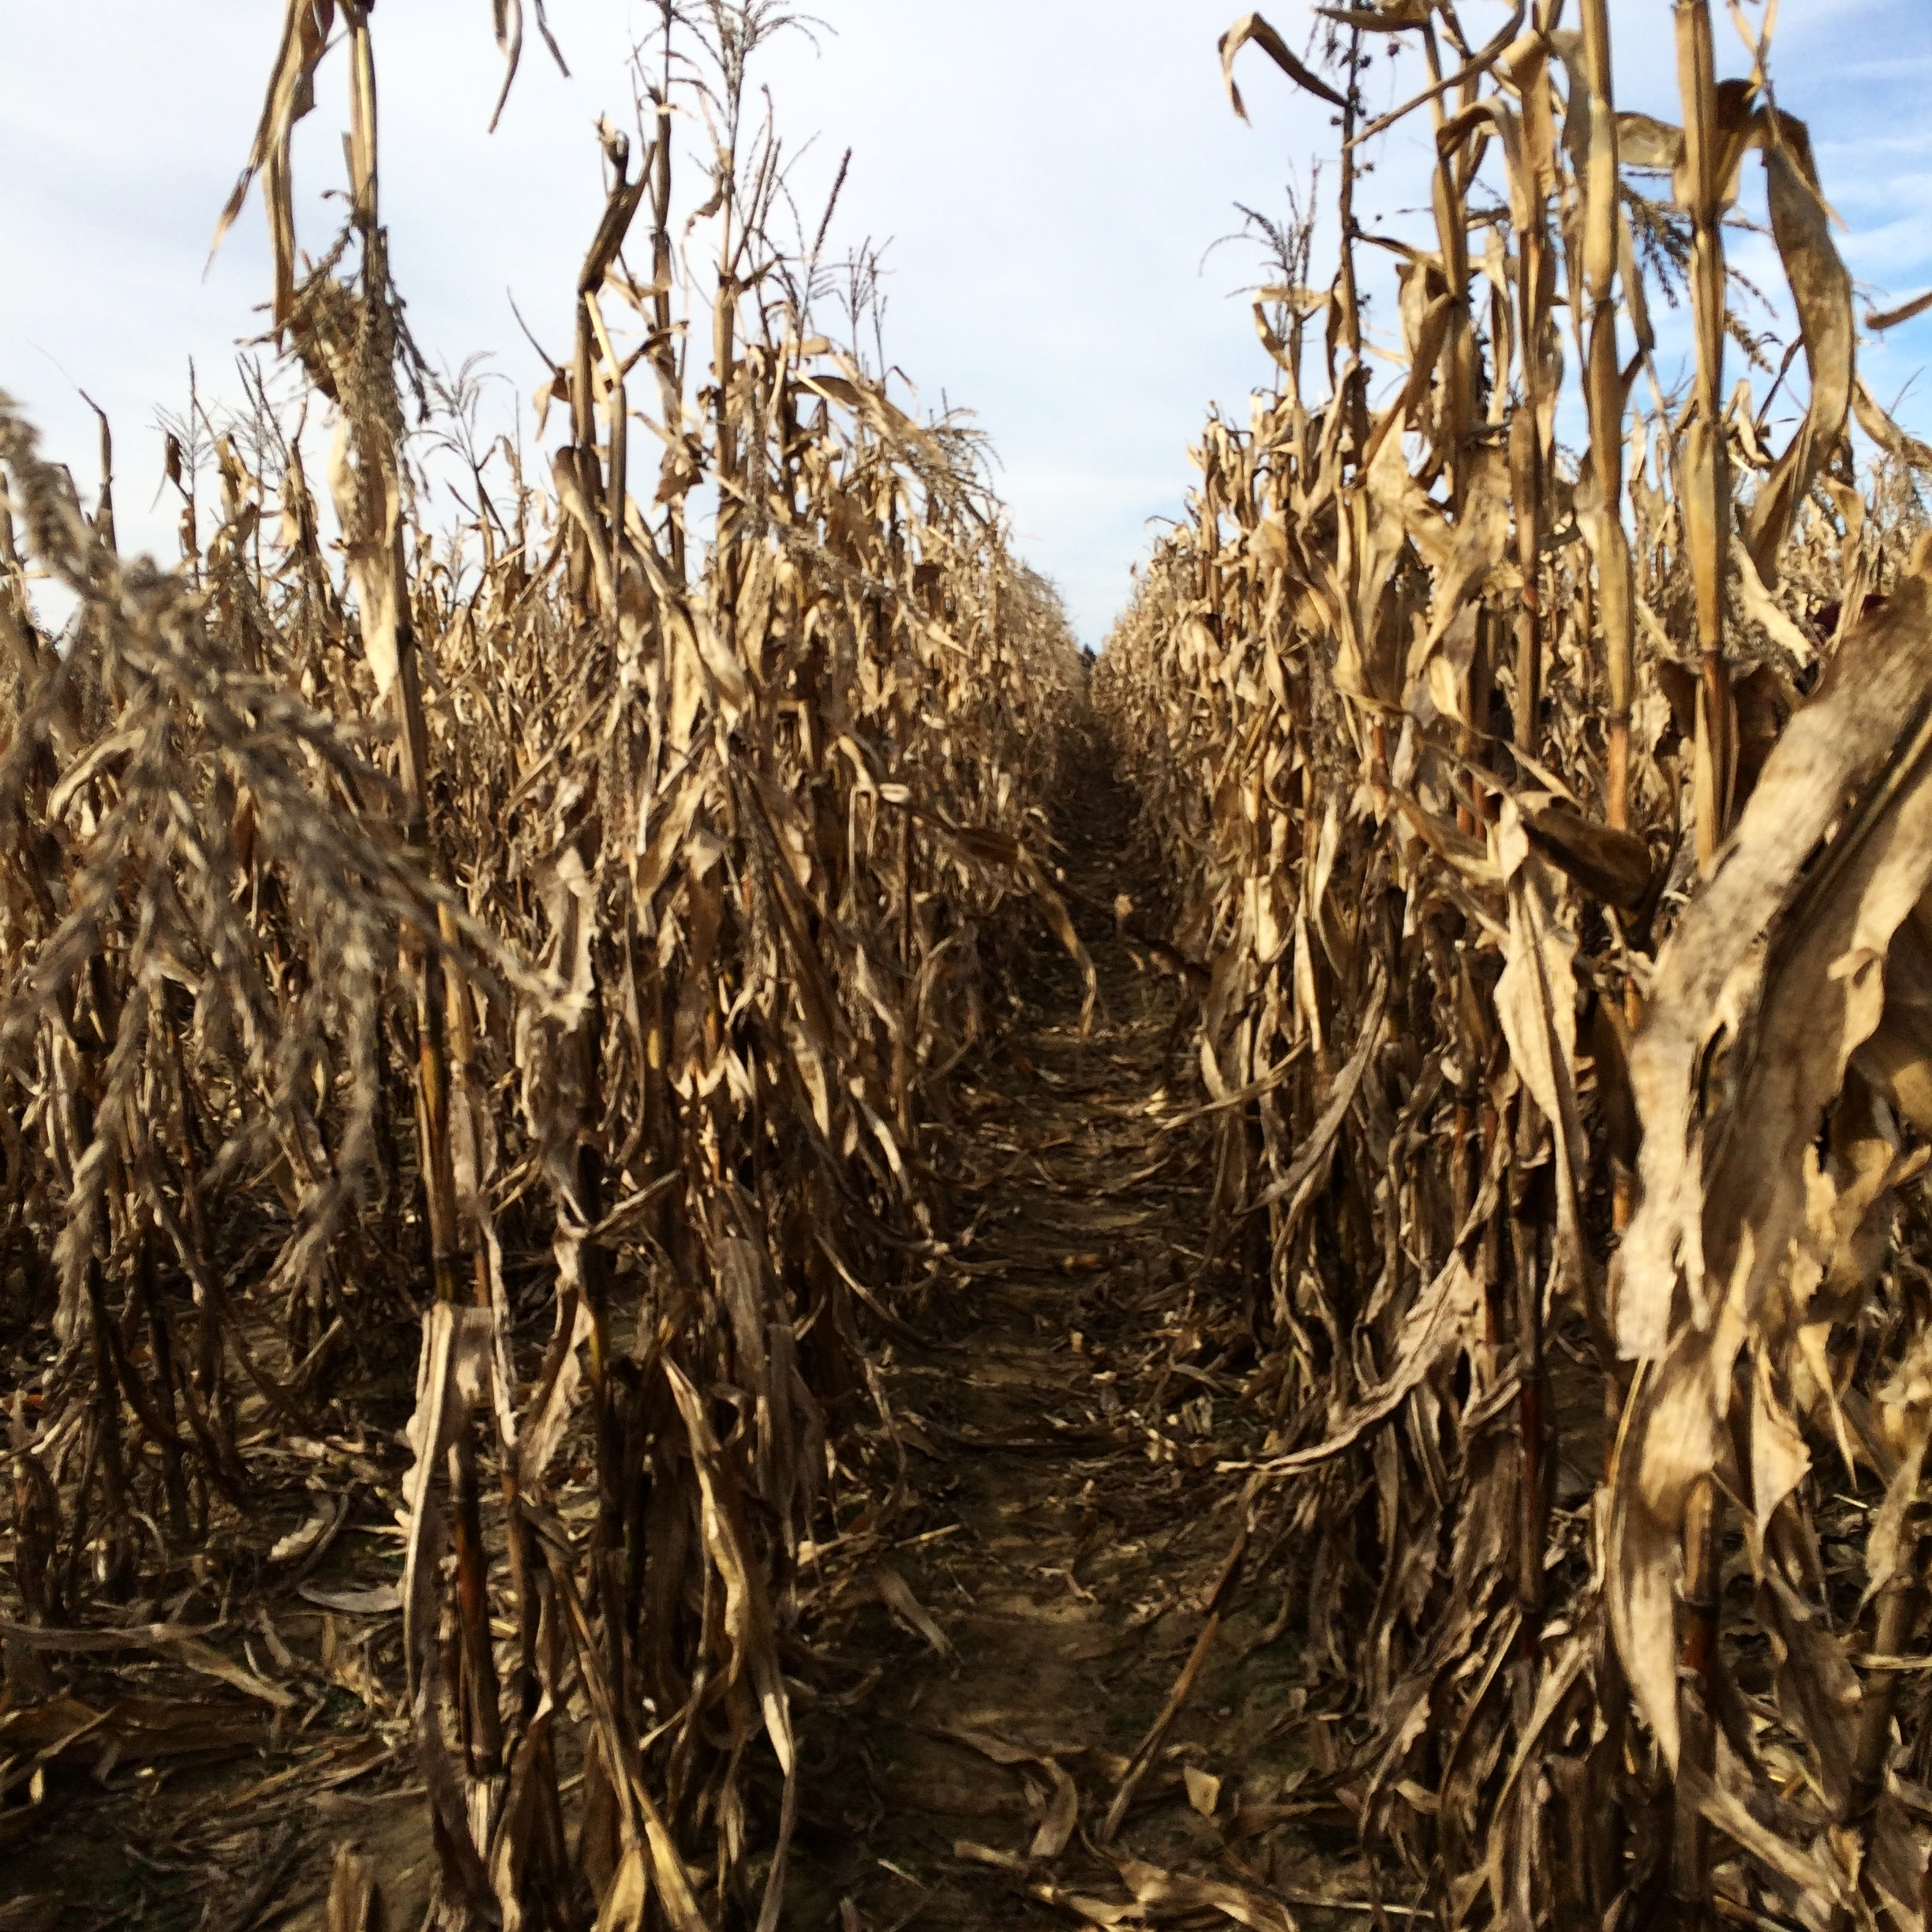 nearby. I had a dream that cornstalks wrapped around my chest and arms. land in memory.